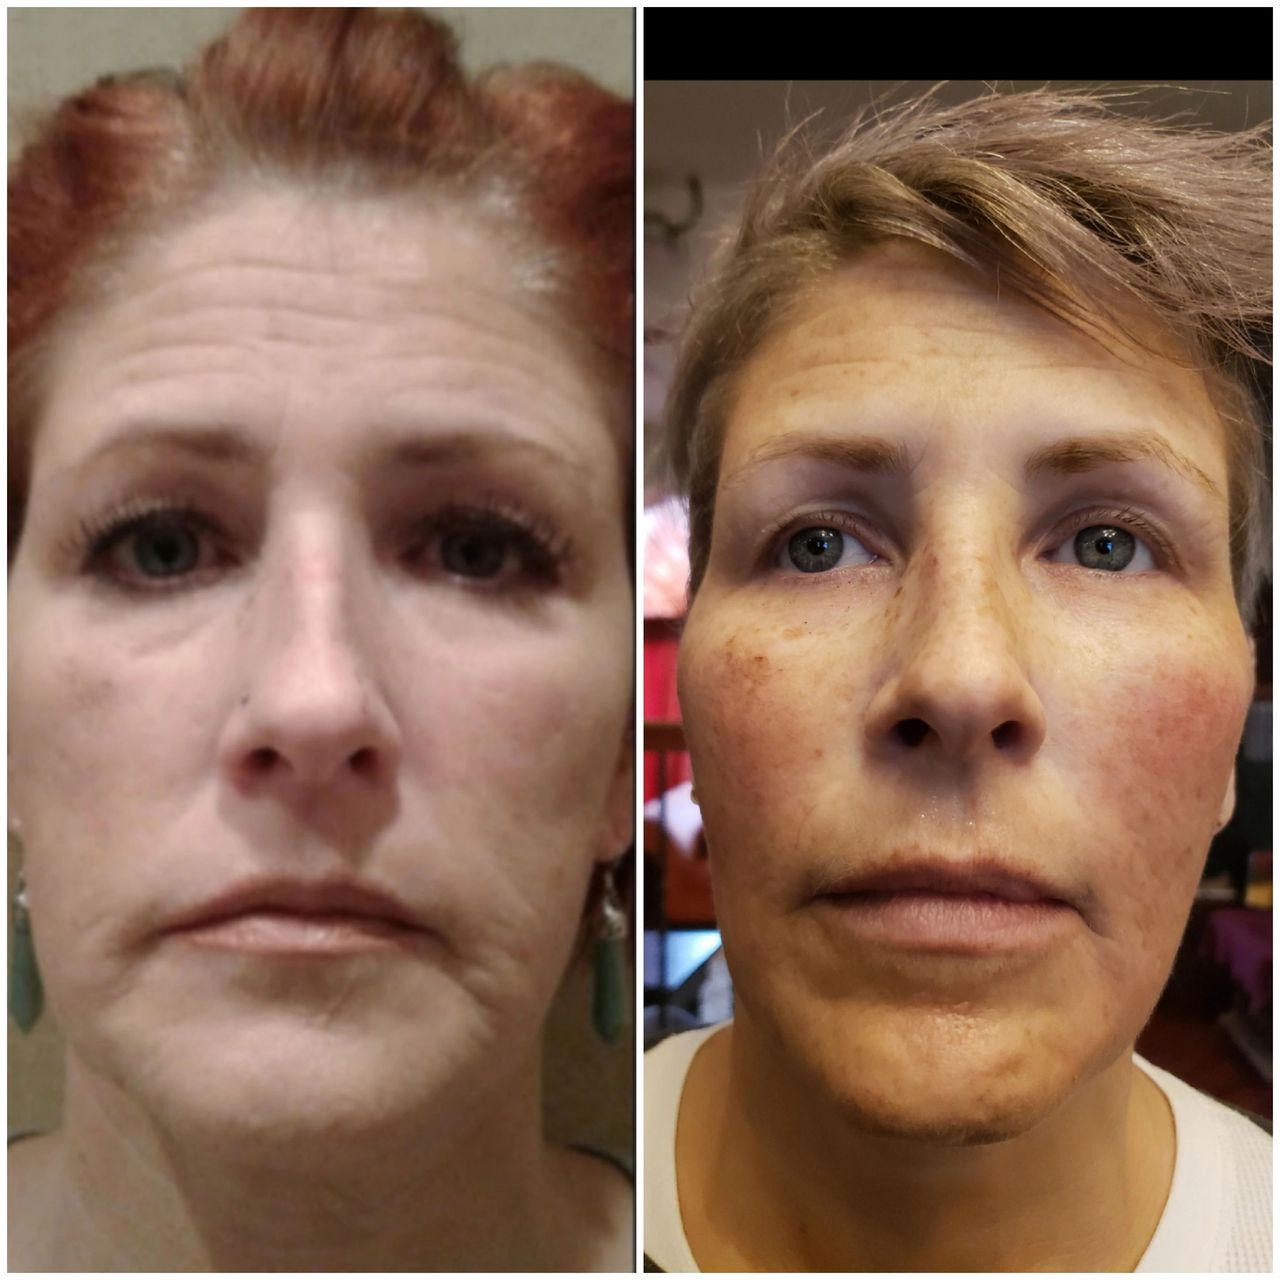 The Aging Face & What can do to improve our appearance? 5 steps to facial rejuvenation